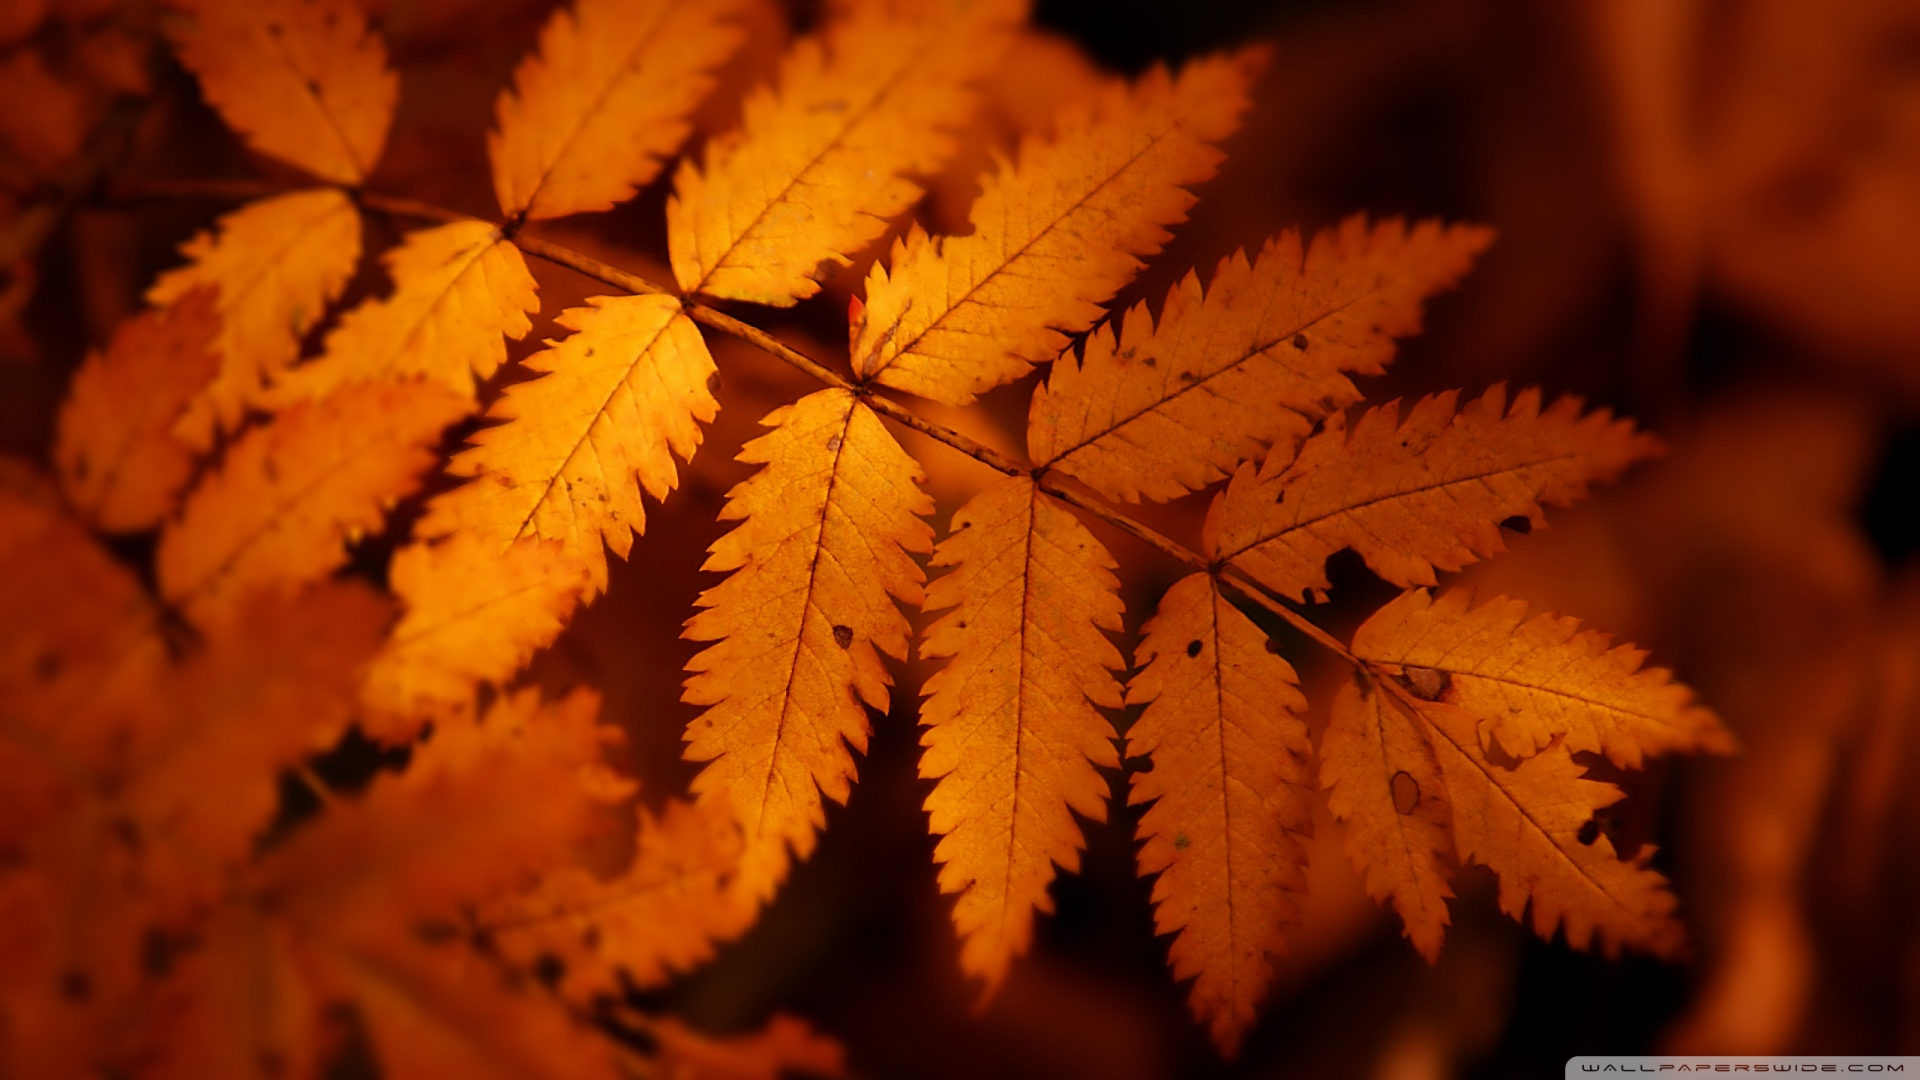 Fall Of The Leafe Wallpaper Brown Autumn Leaf 3 4k Hd Desktop Wallpaper For 4k Ultra